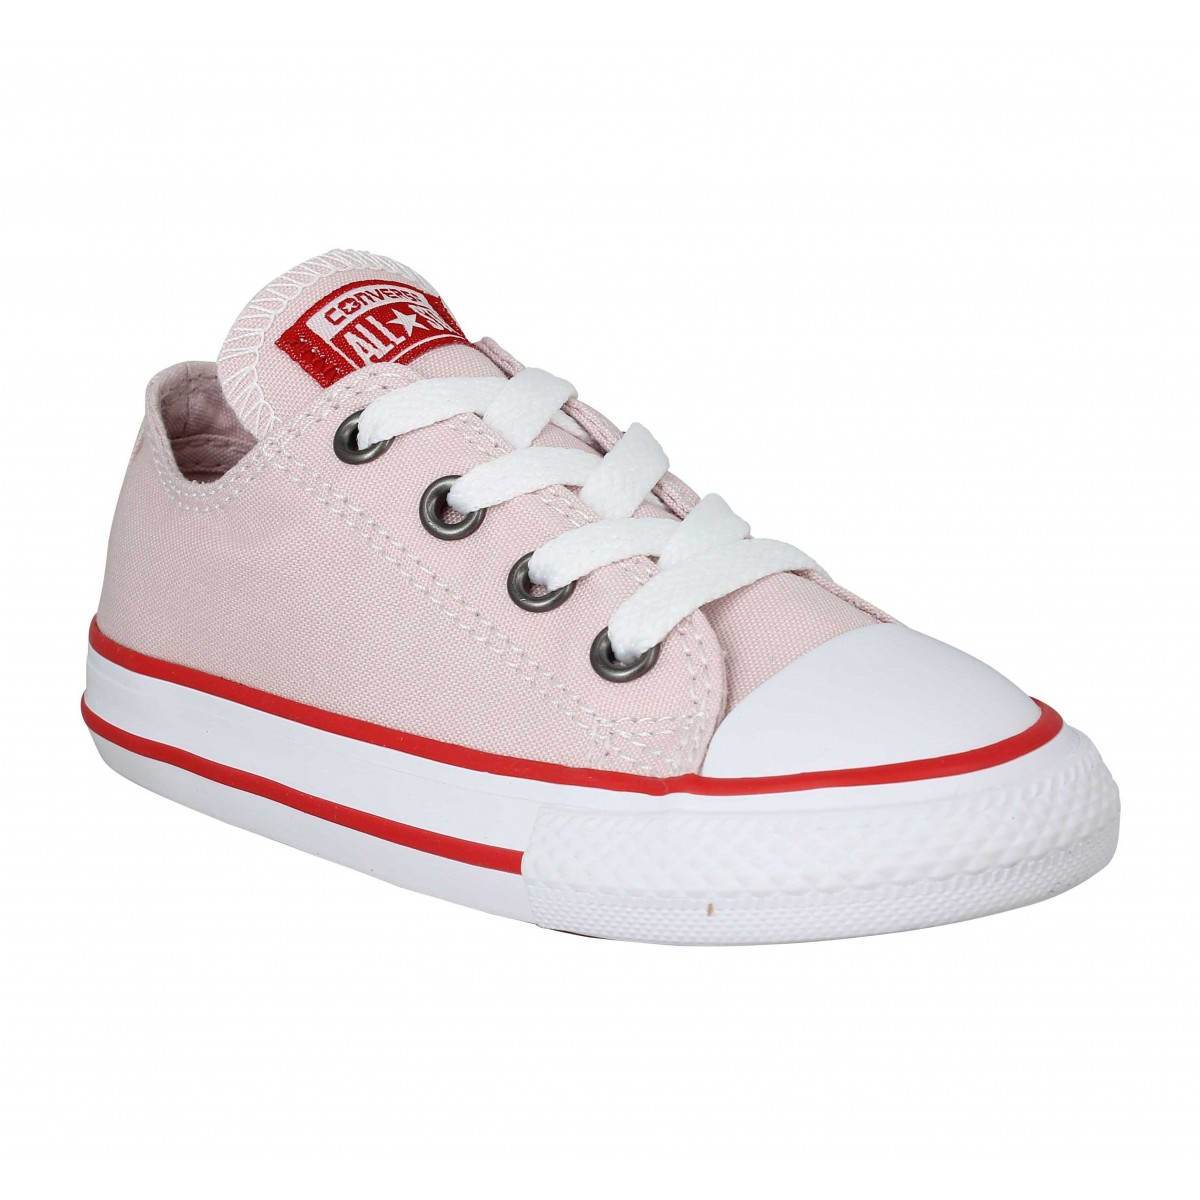 Baskets CONVERSE Chuck Taylor All Star toile Enfant Barely Rose